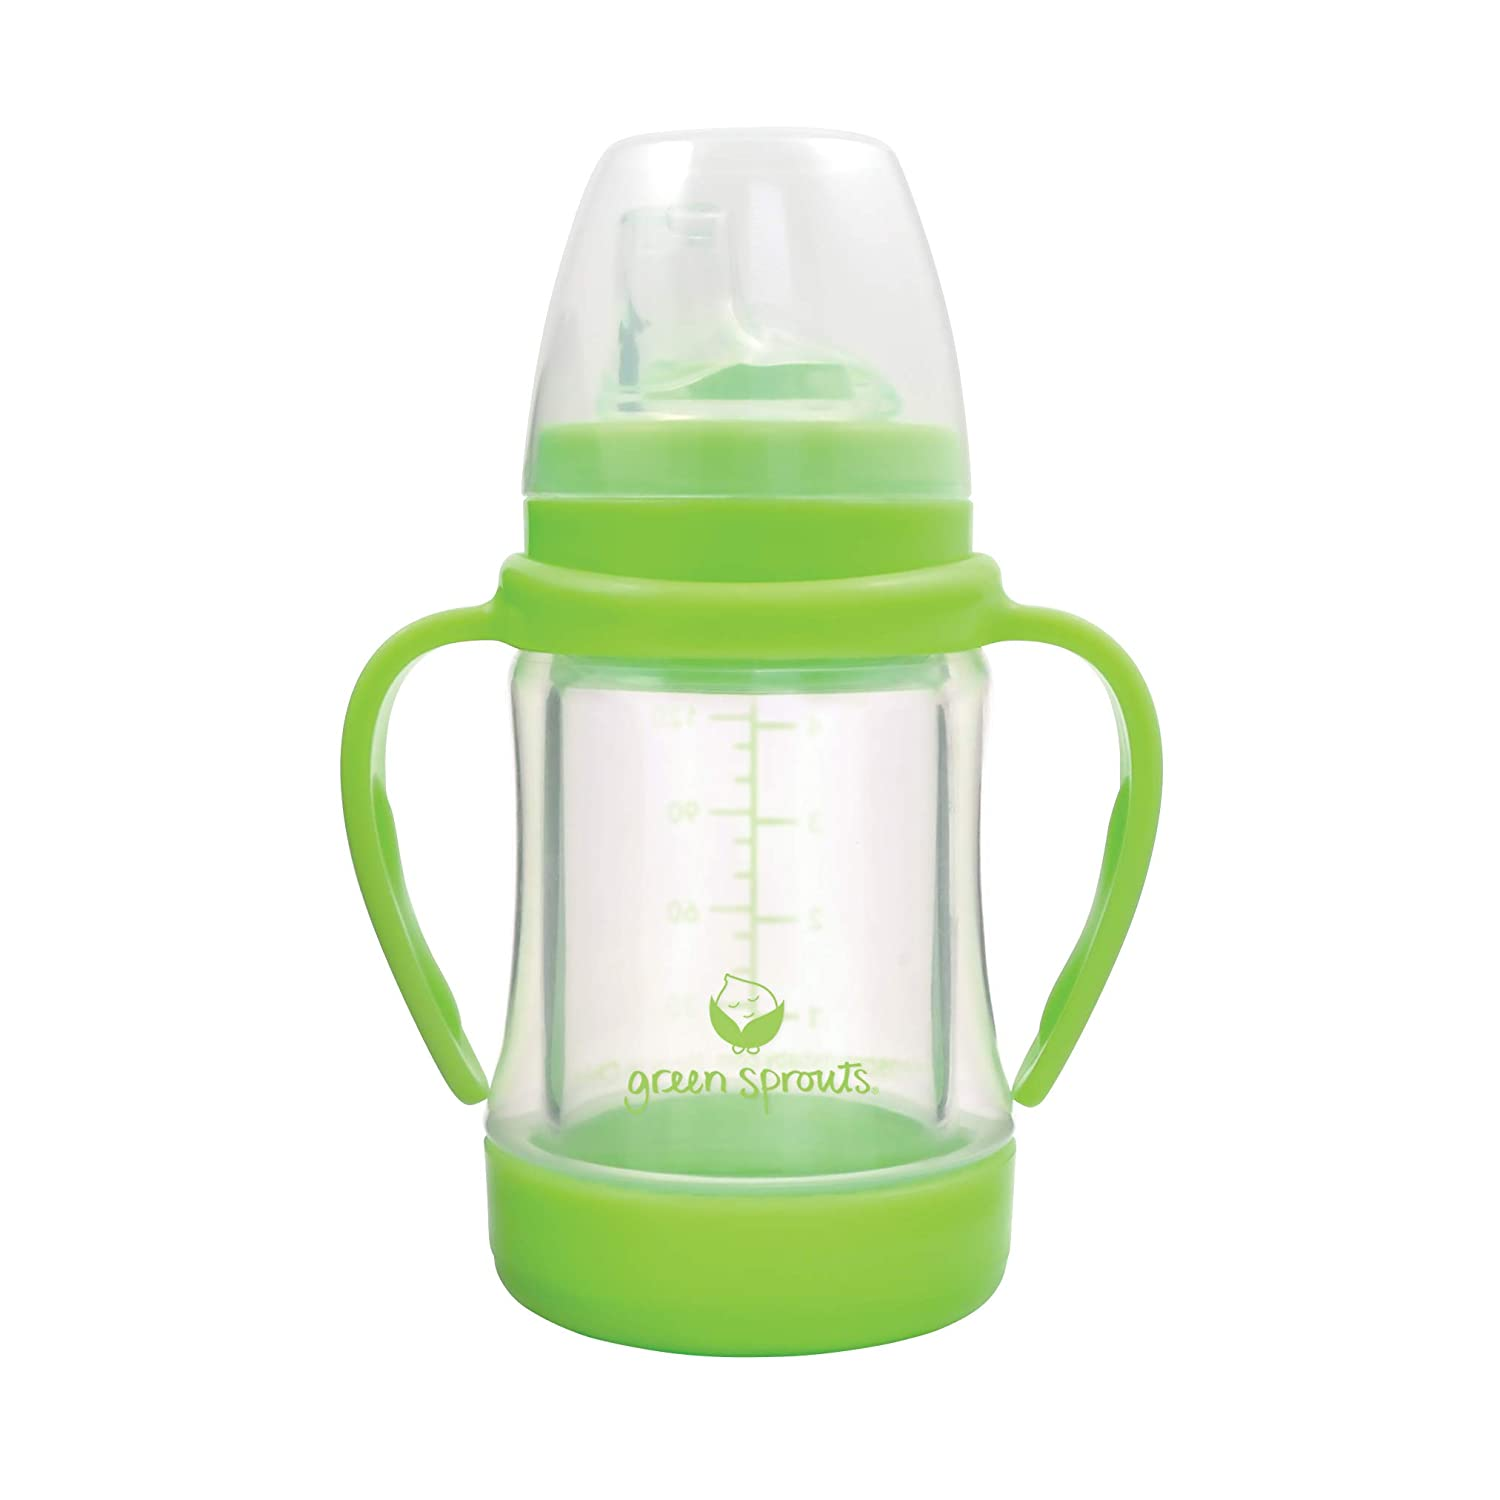 Top 7 Best Sippy Cup for 6 Month Old Breastfed Baby Reviews in 2019 6